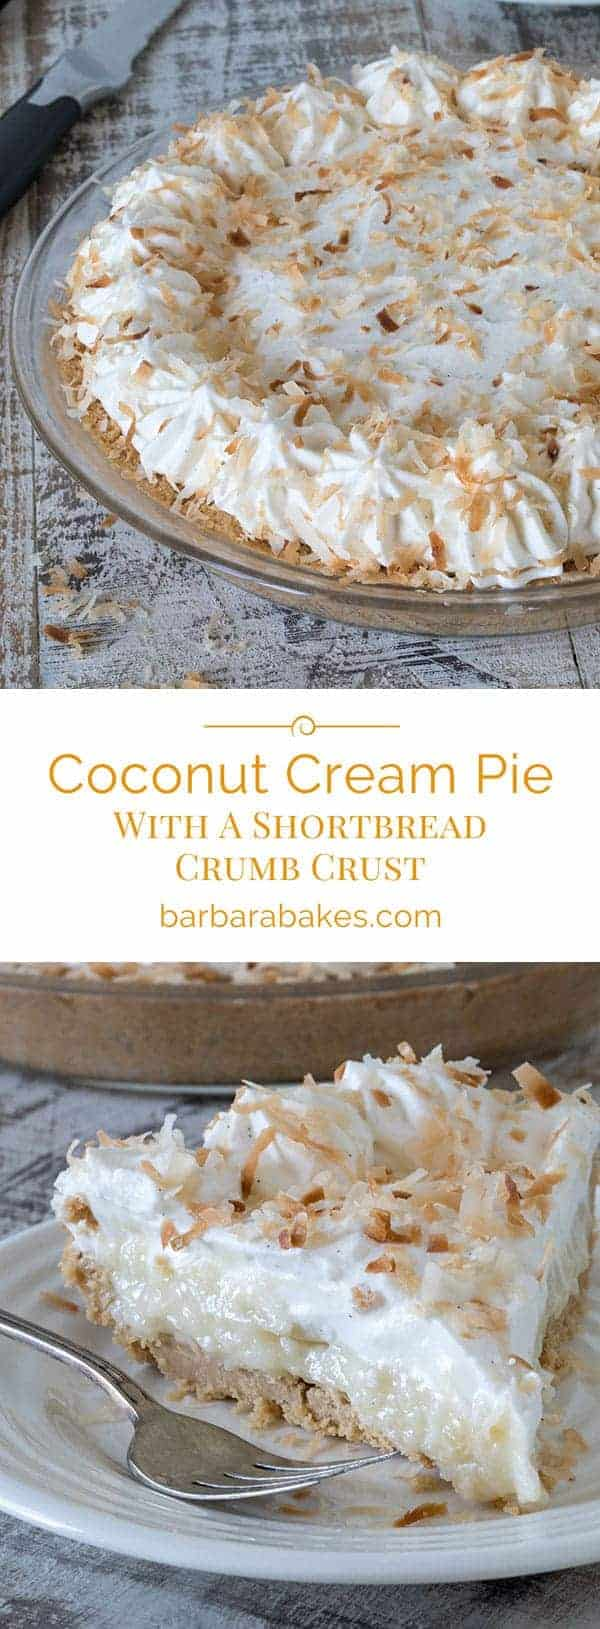 Coconut-Cream-Pie-Shortbread-Crumb-Crust-Collage-Barbara-Bakes